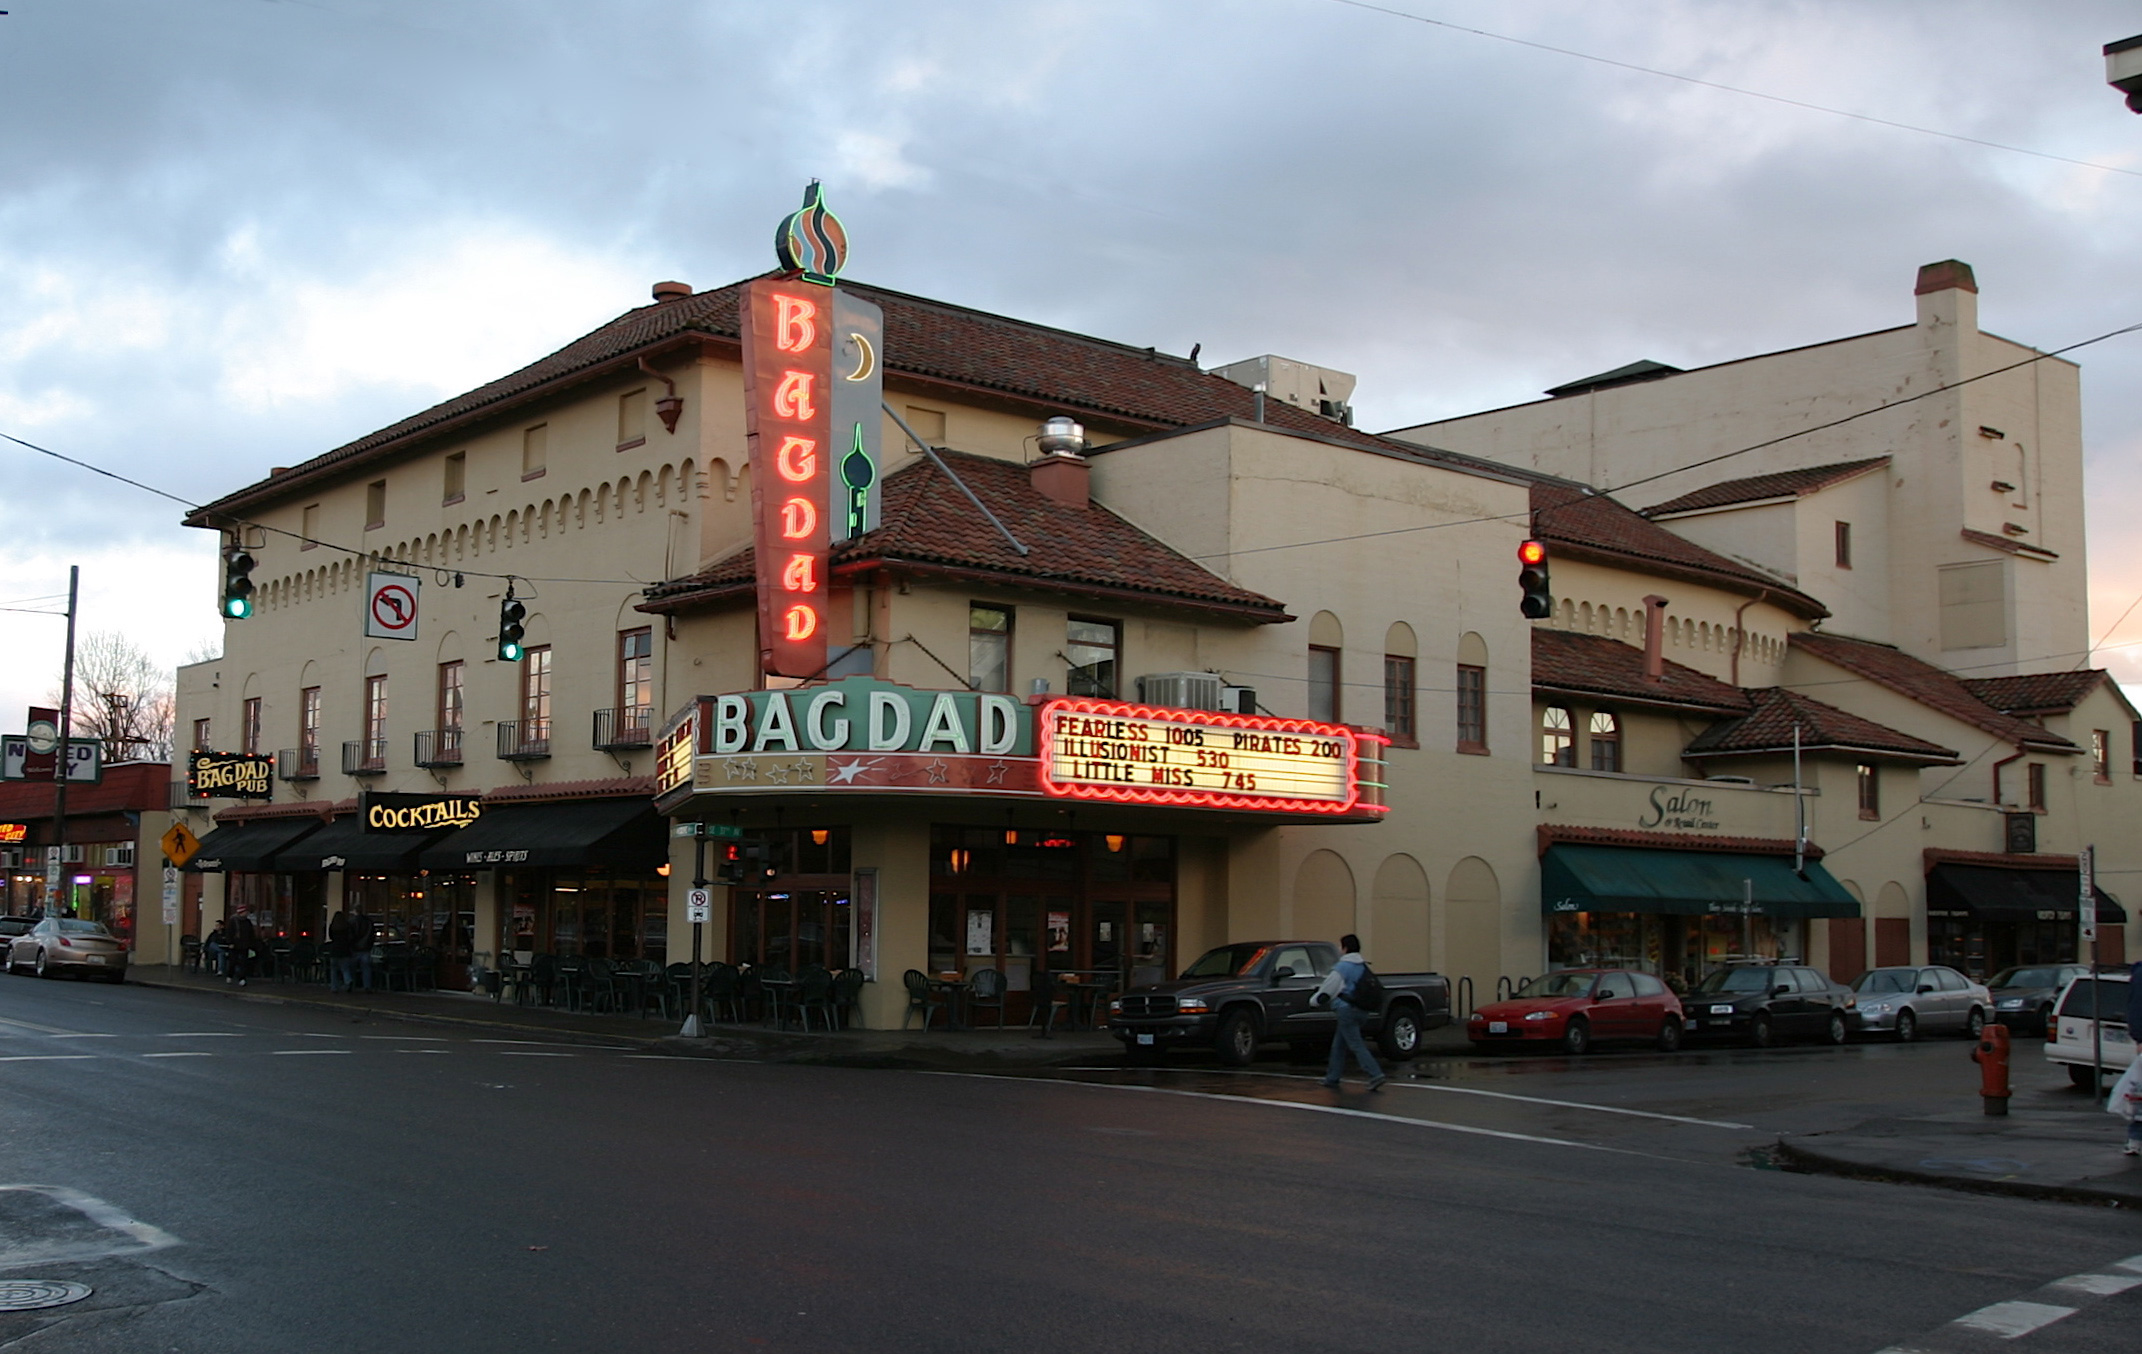 The Bagdad Theatre as seen from the outside